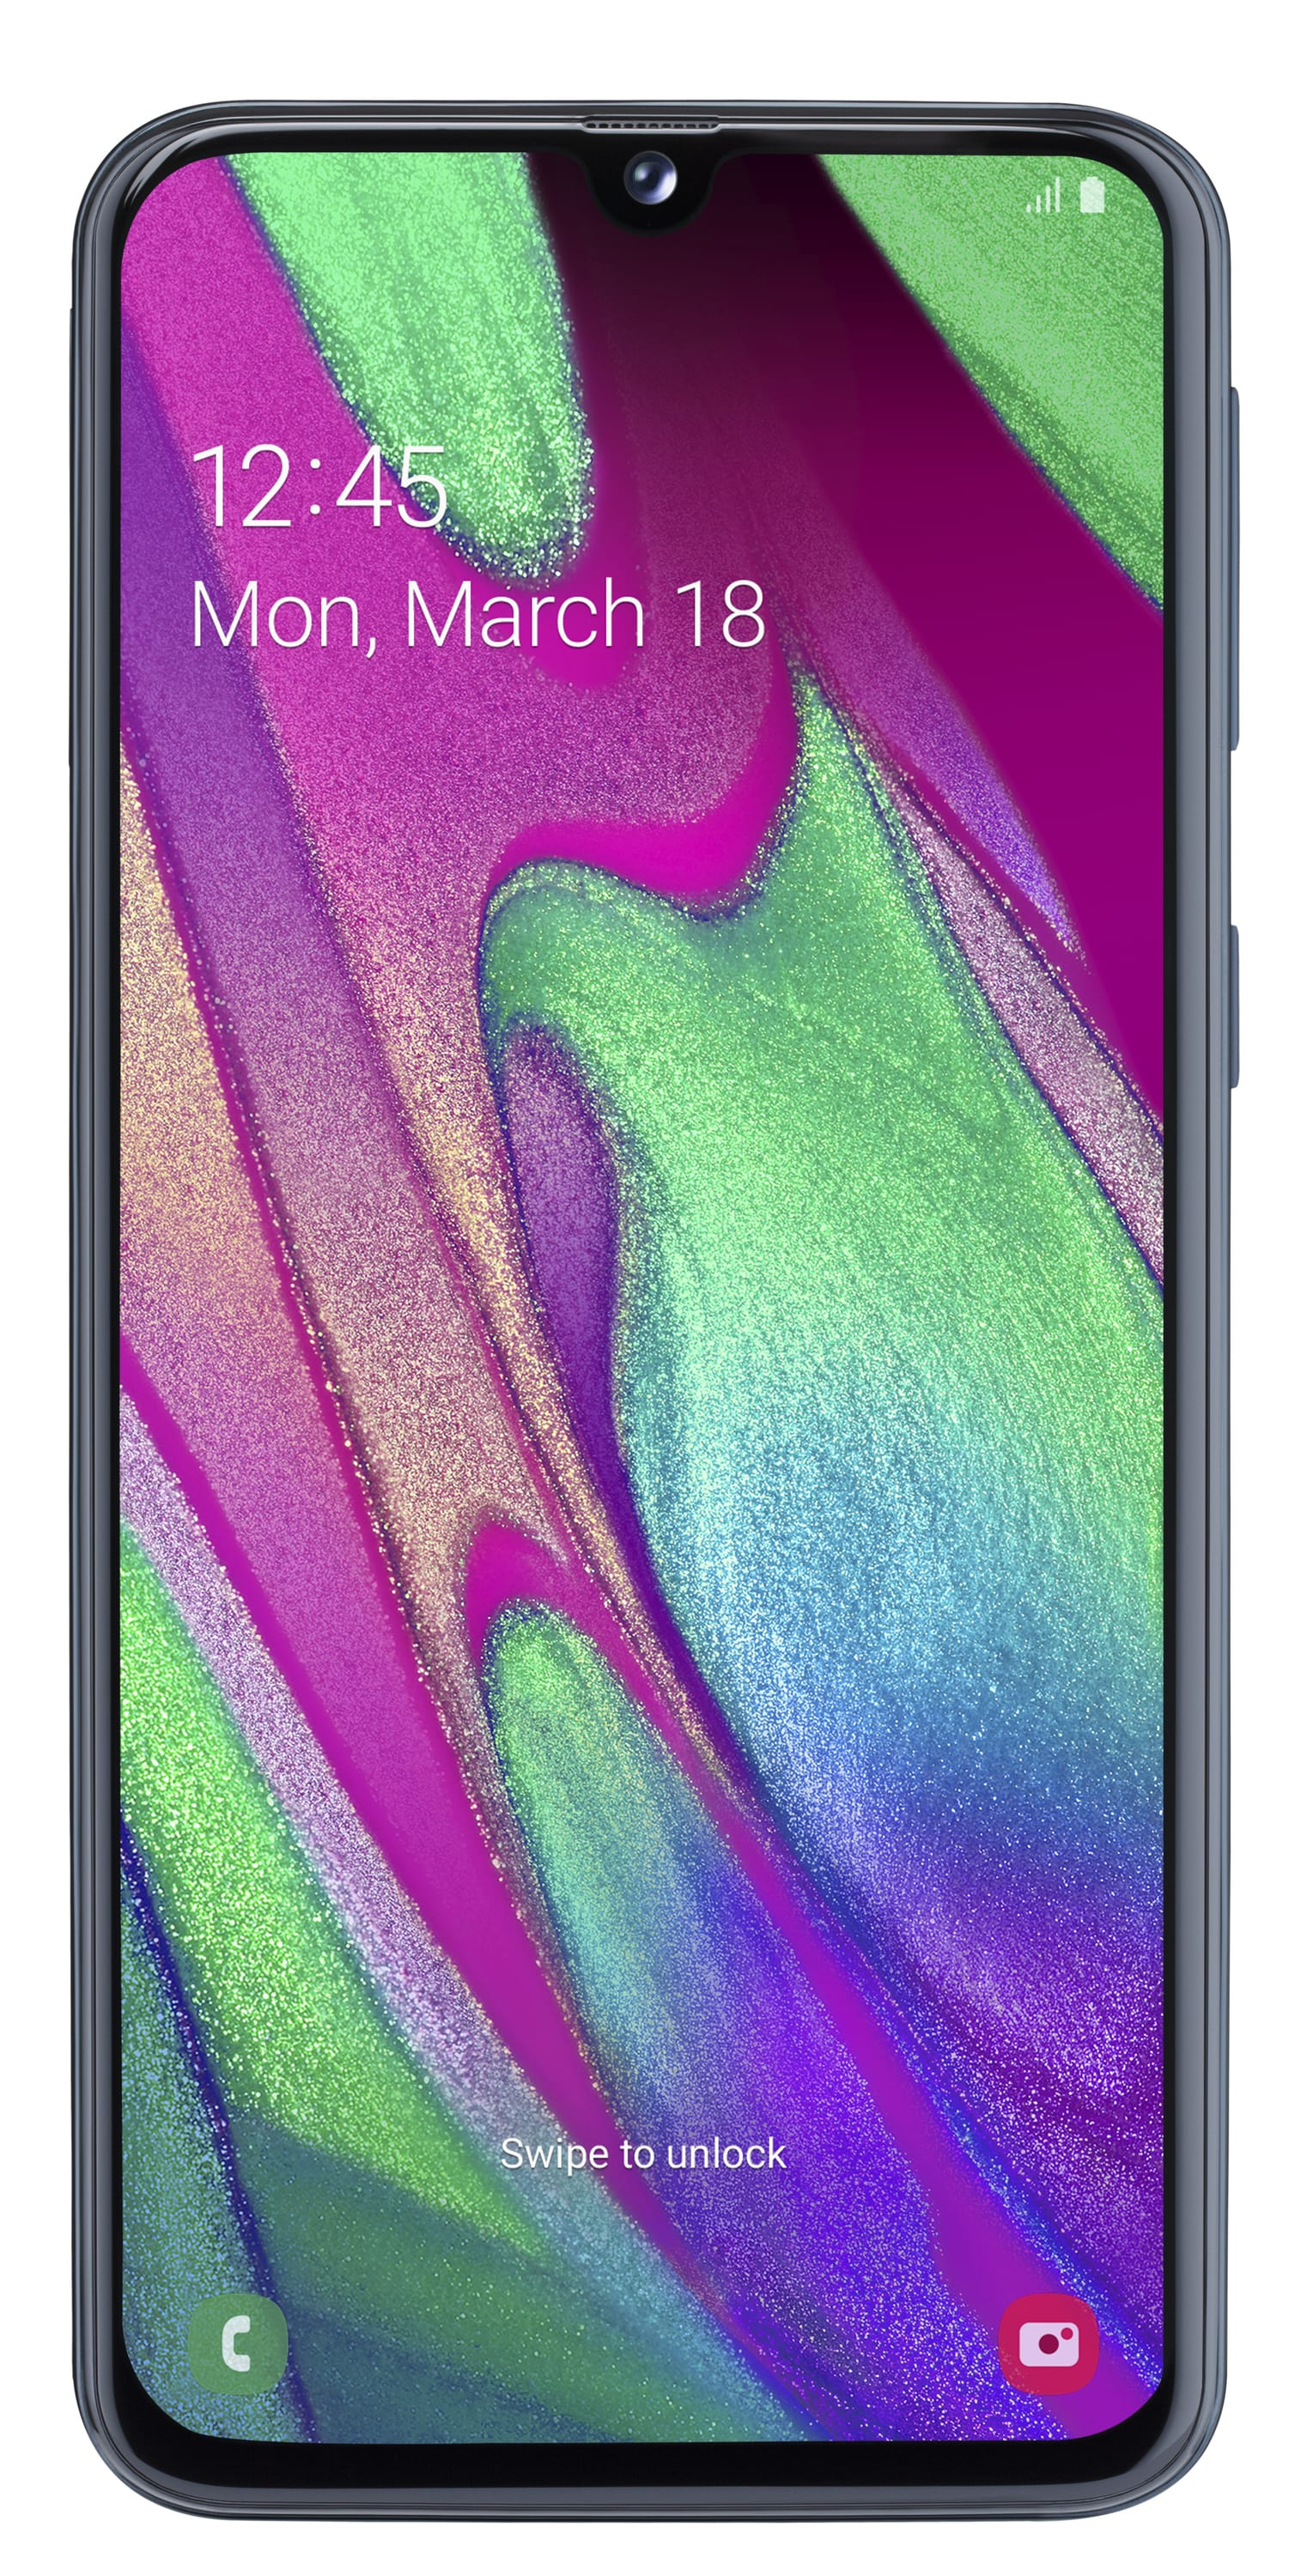 Samsung Galaxy A40 14,44cm 64GB Full HD Super AMOLED 25MP für 199,00 Euro